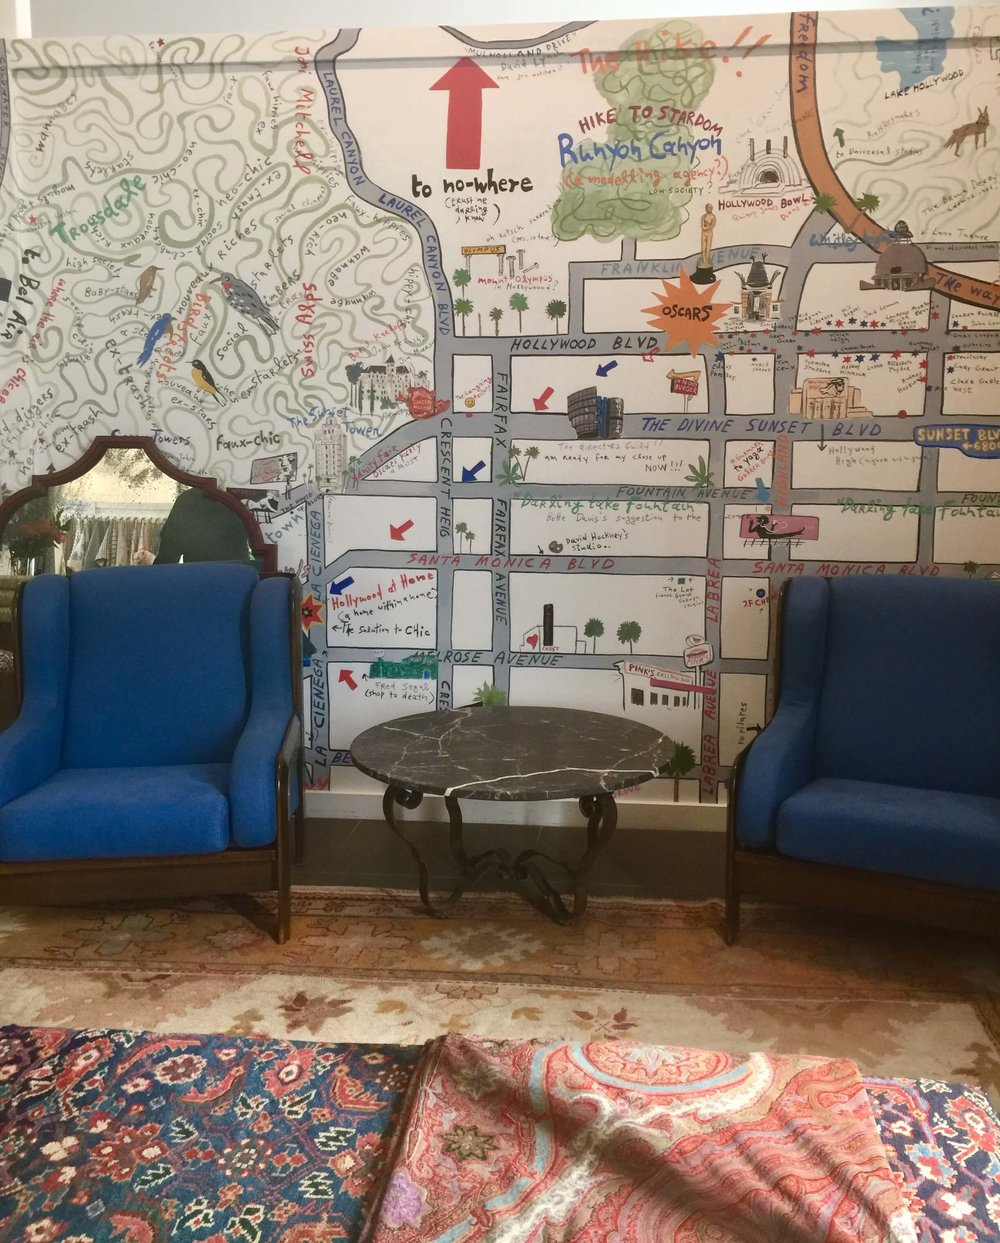 LA wallcovering map in Hollywood at Home, home furnishings shop in Los Angeles #map #wallmural